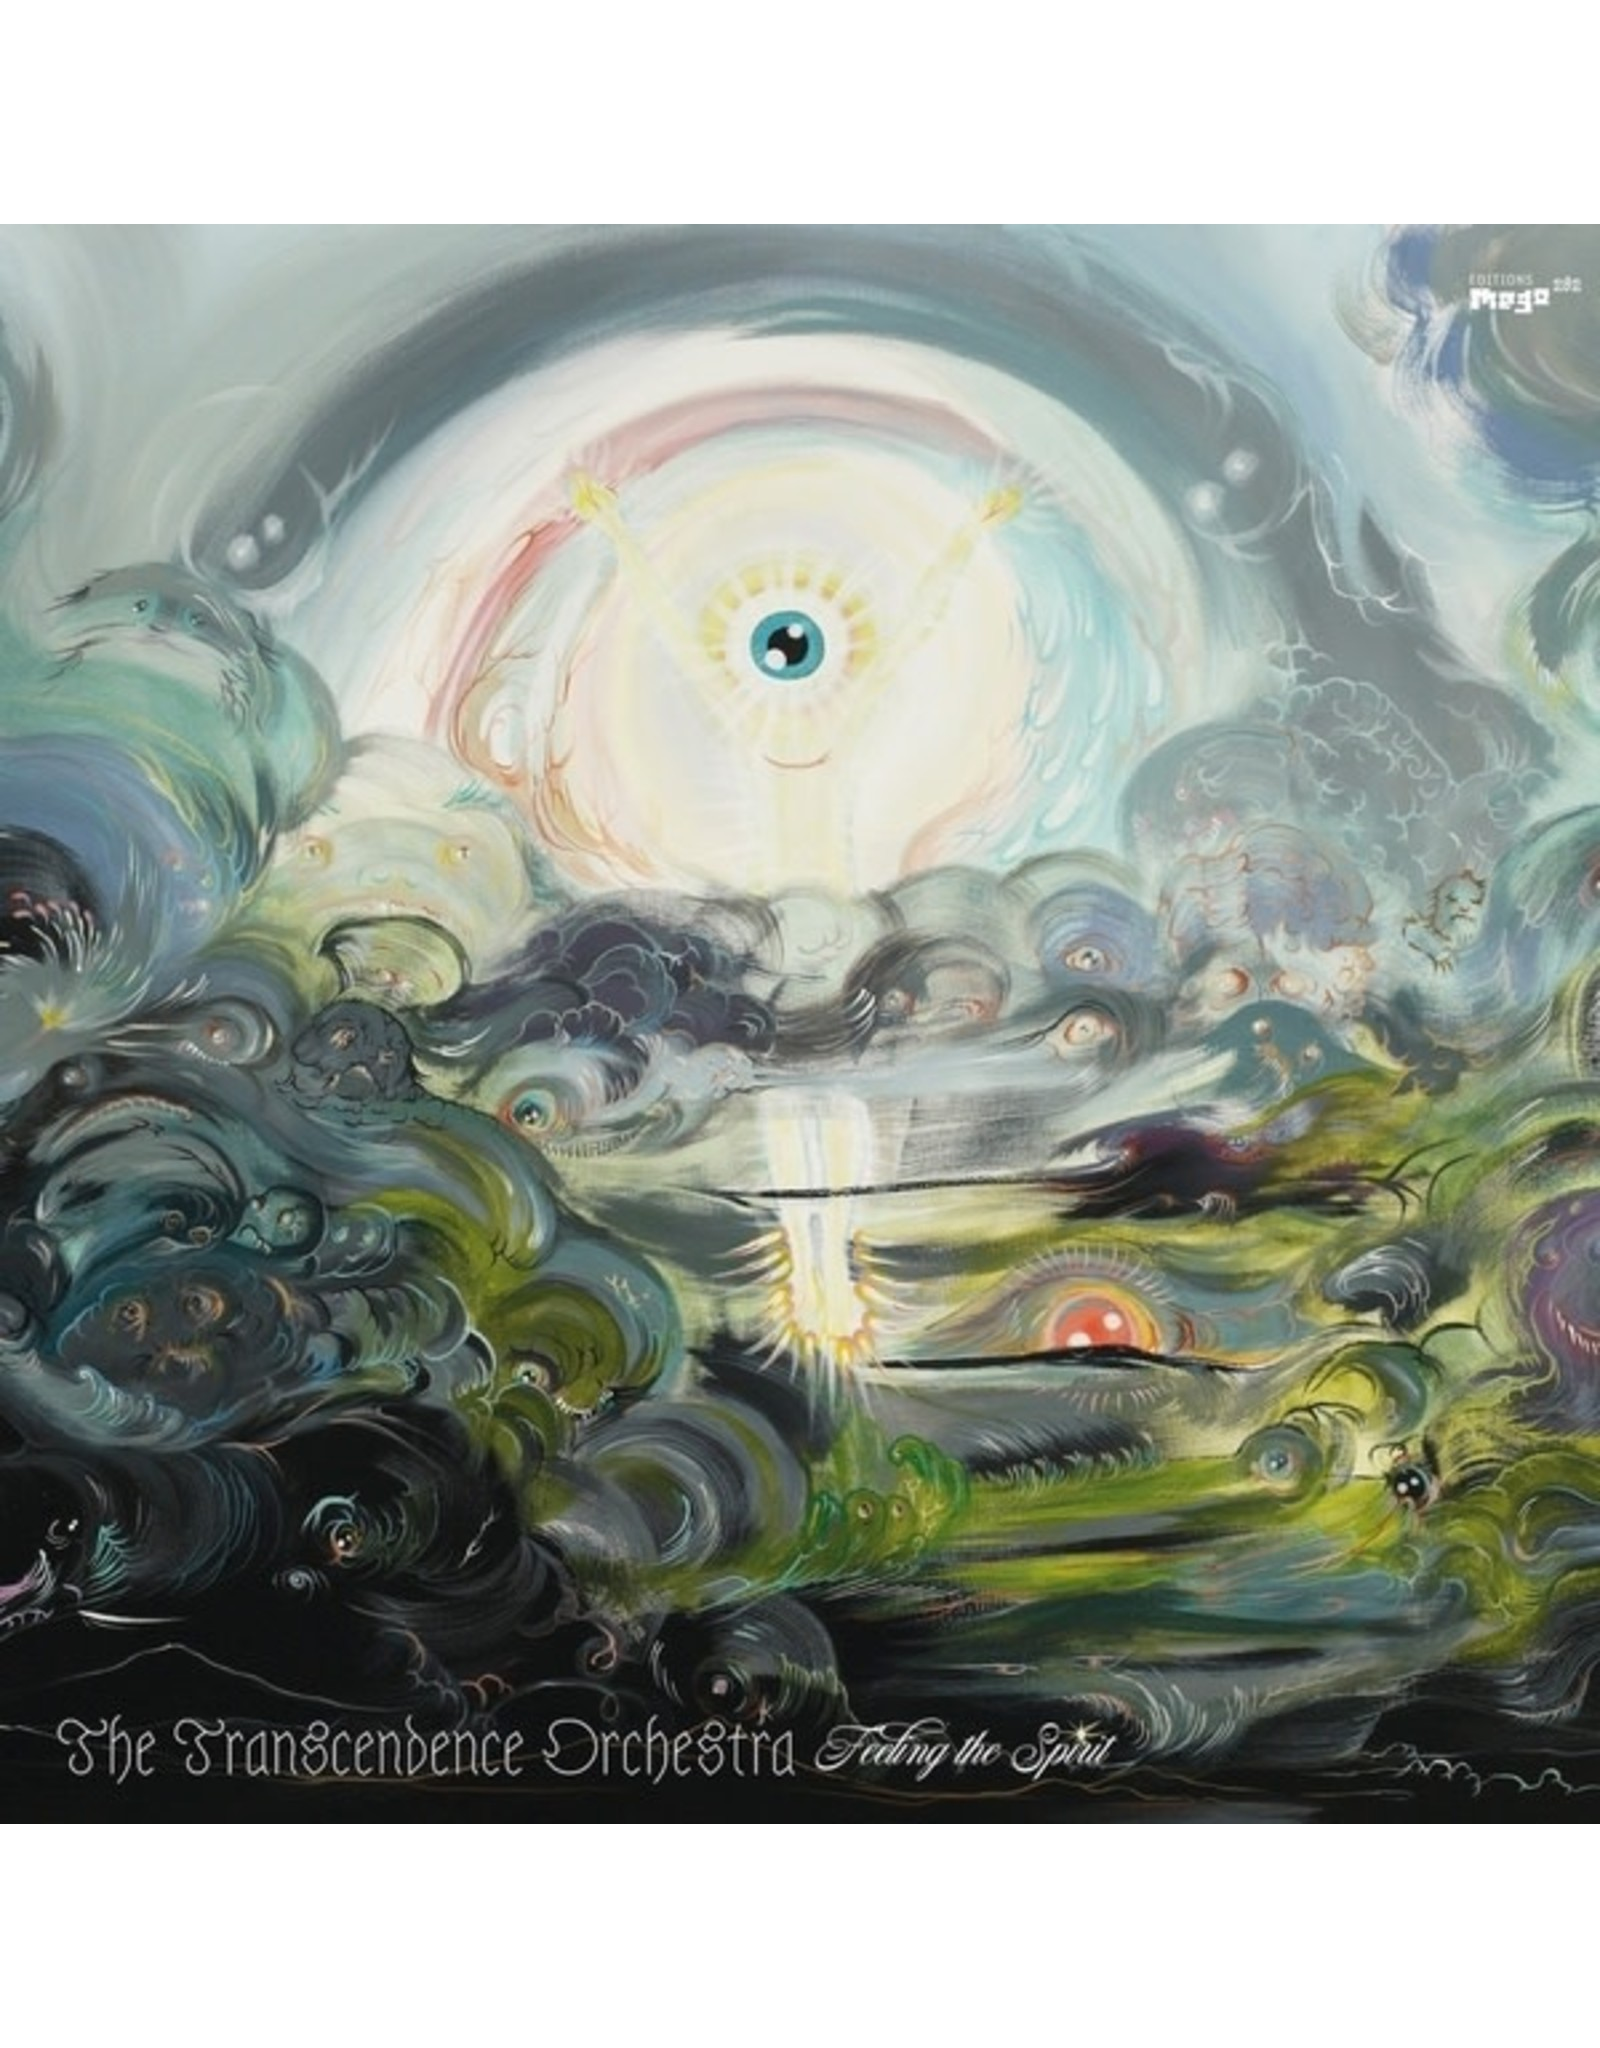 Editions Mego Transcendence Orchestra: Feeling The Spirit LP